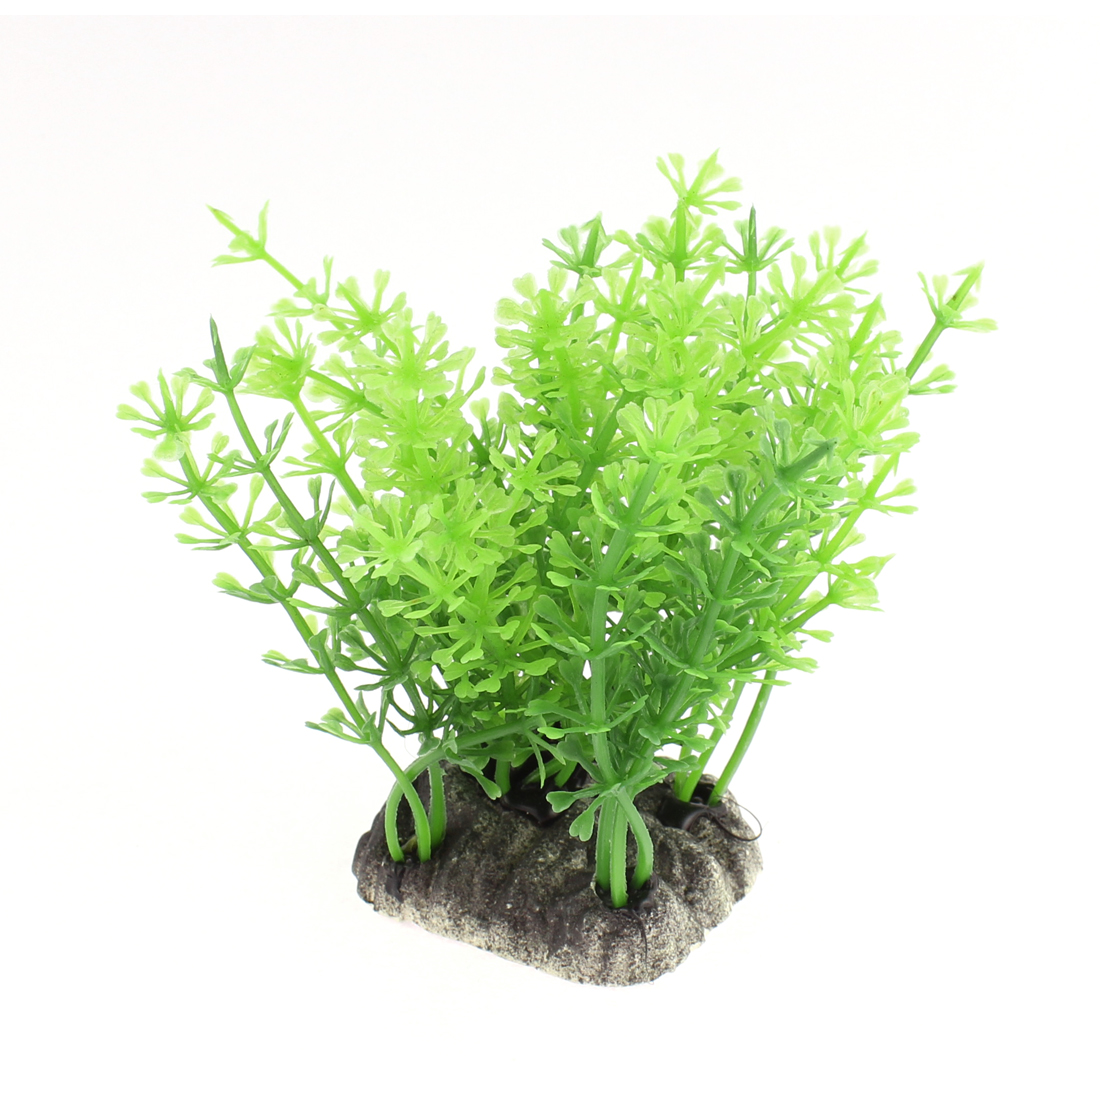 Aquarium Artificial Landscaping Water Grass Plant Decoration Green